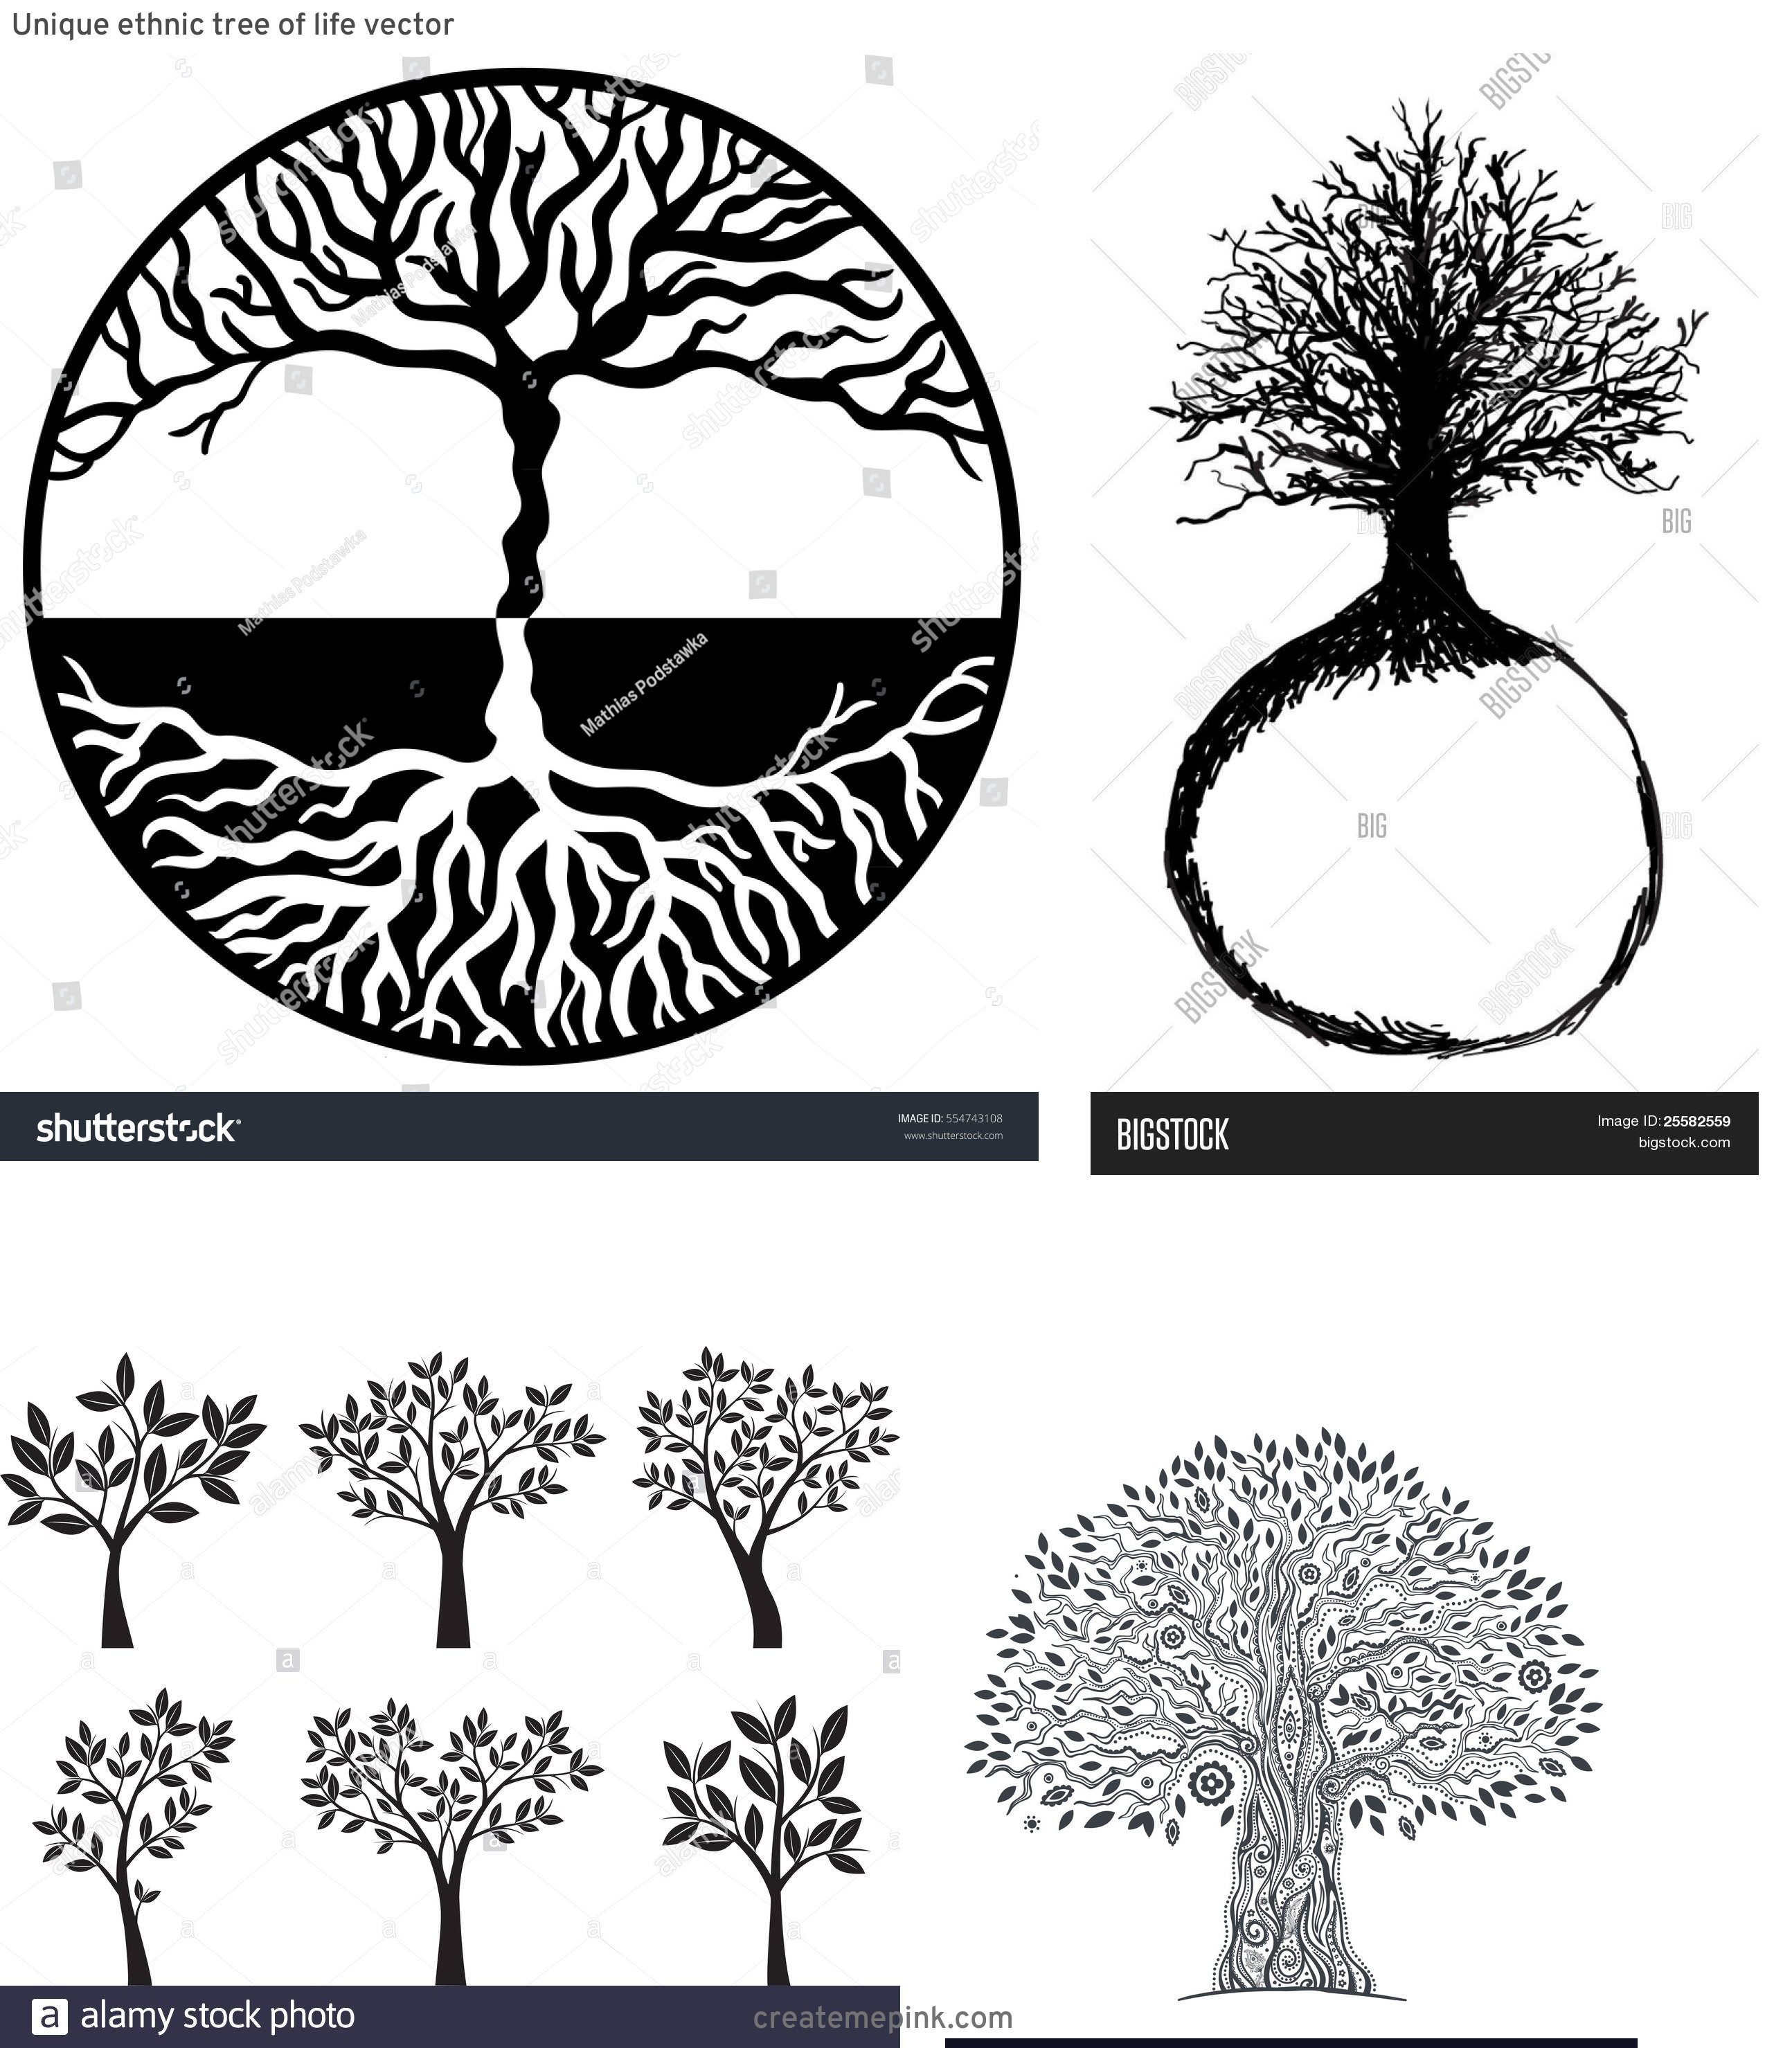 Vector Images Black Tree Of Life: Unique Ethnic Tree Of Life Vector